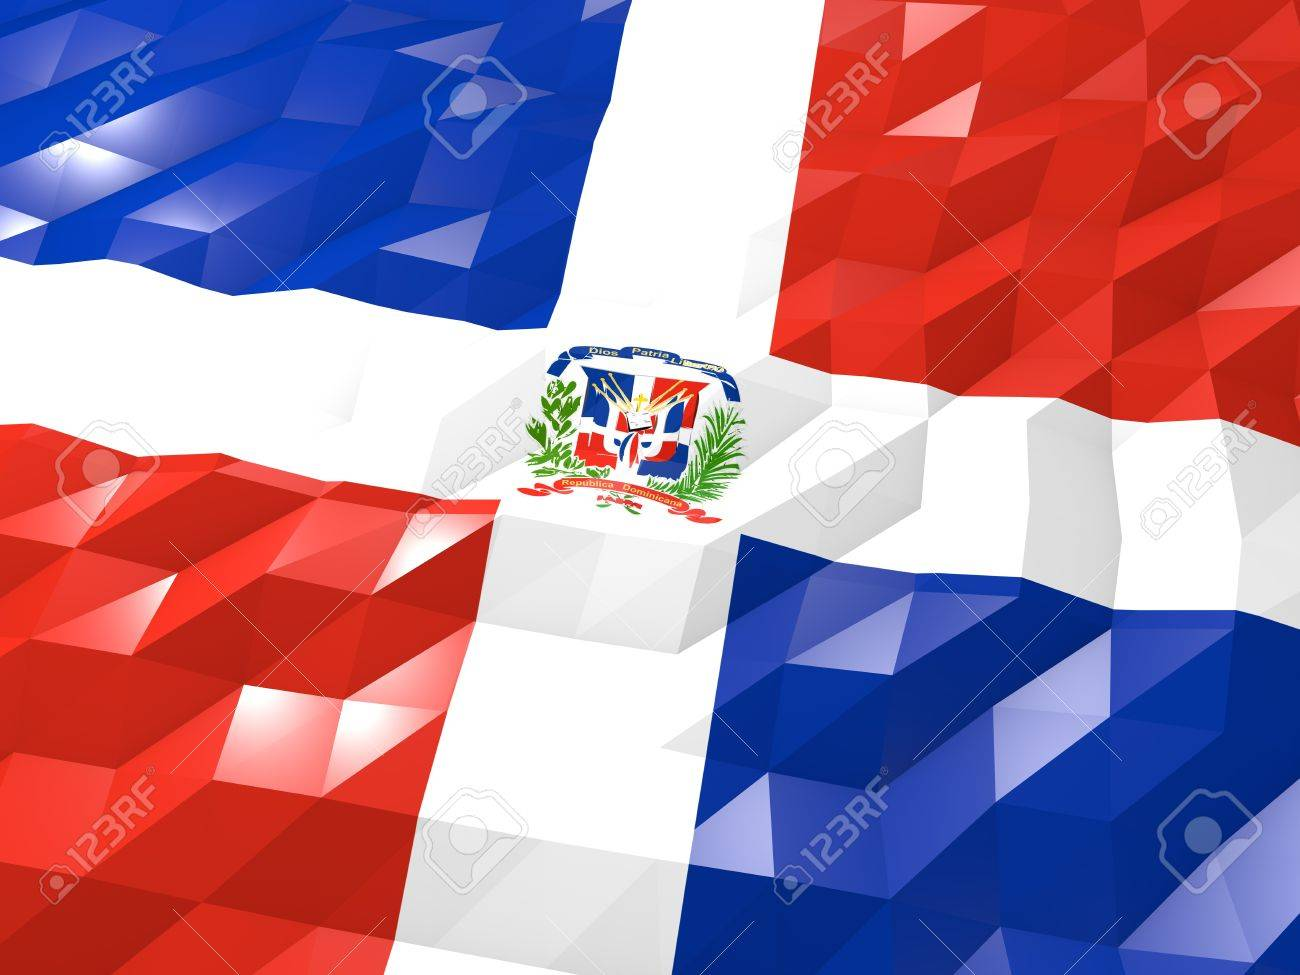 Flag of Dominican Republic 3D Wallpaper Illustration, National Symbol, Low Polygonal Glossy Origami Style